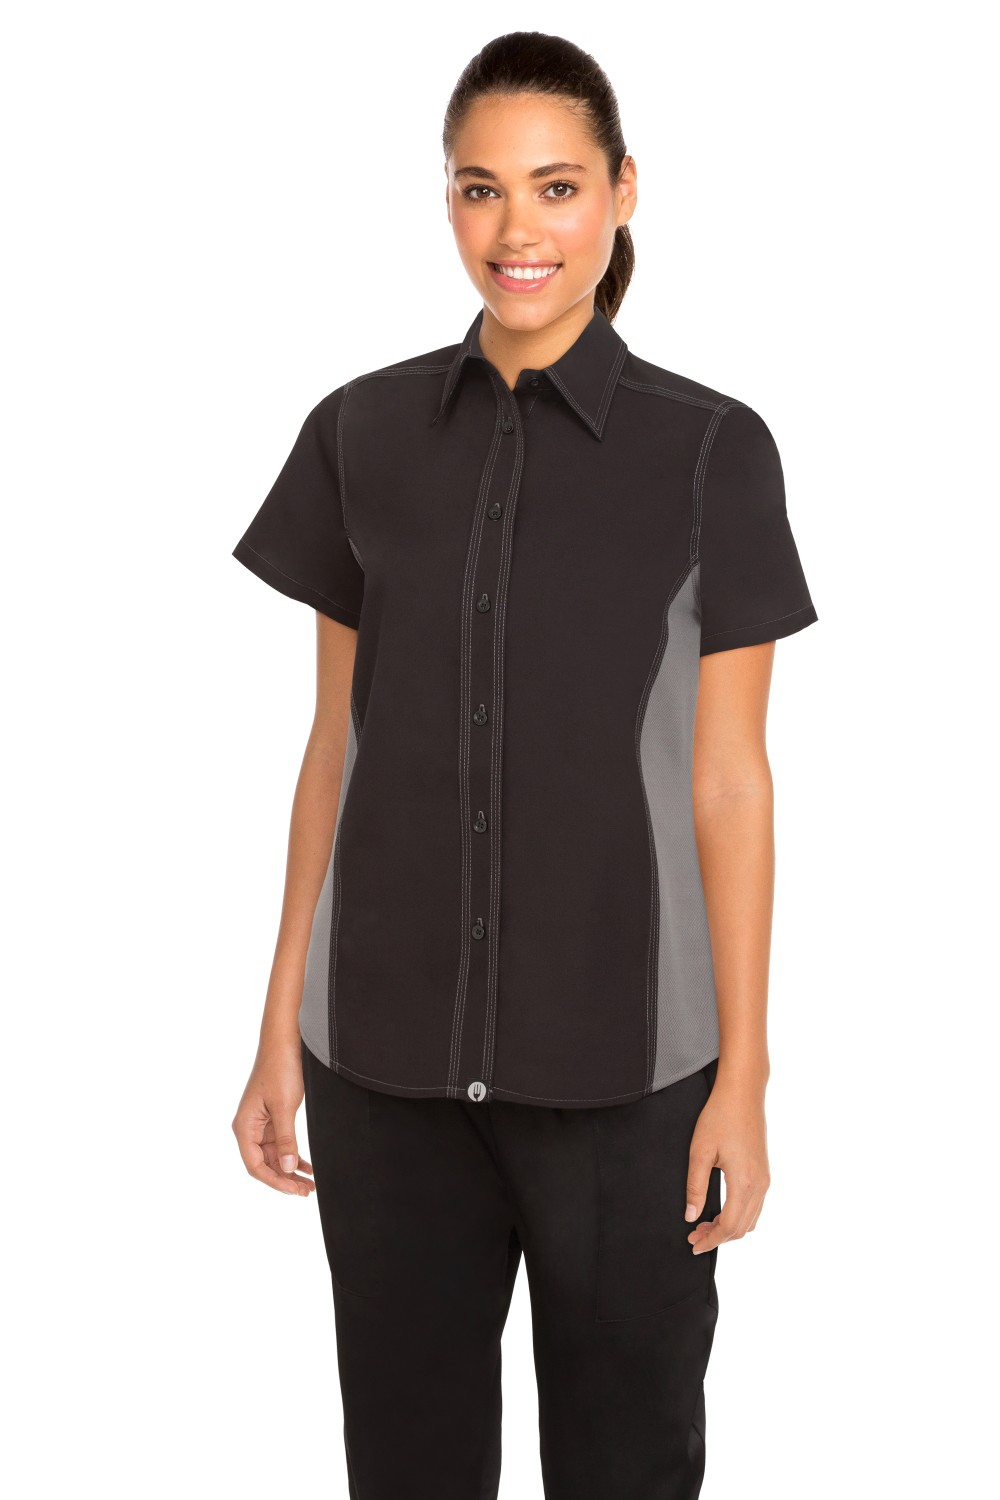 Chef Works CSWC-BLM Women's Universal Contrast Shirt Black,Gray